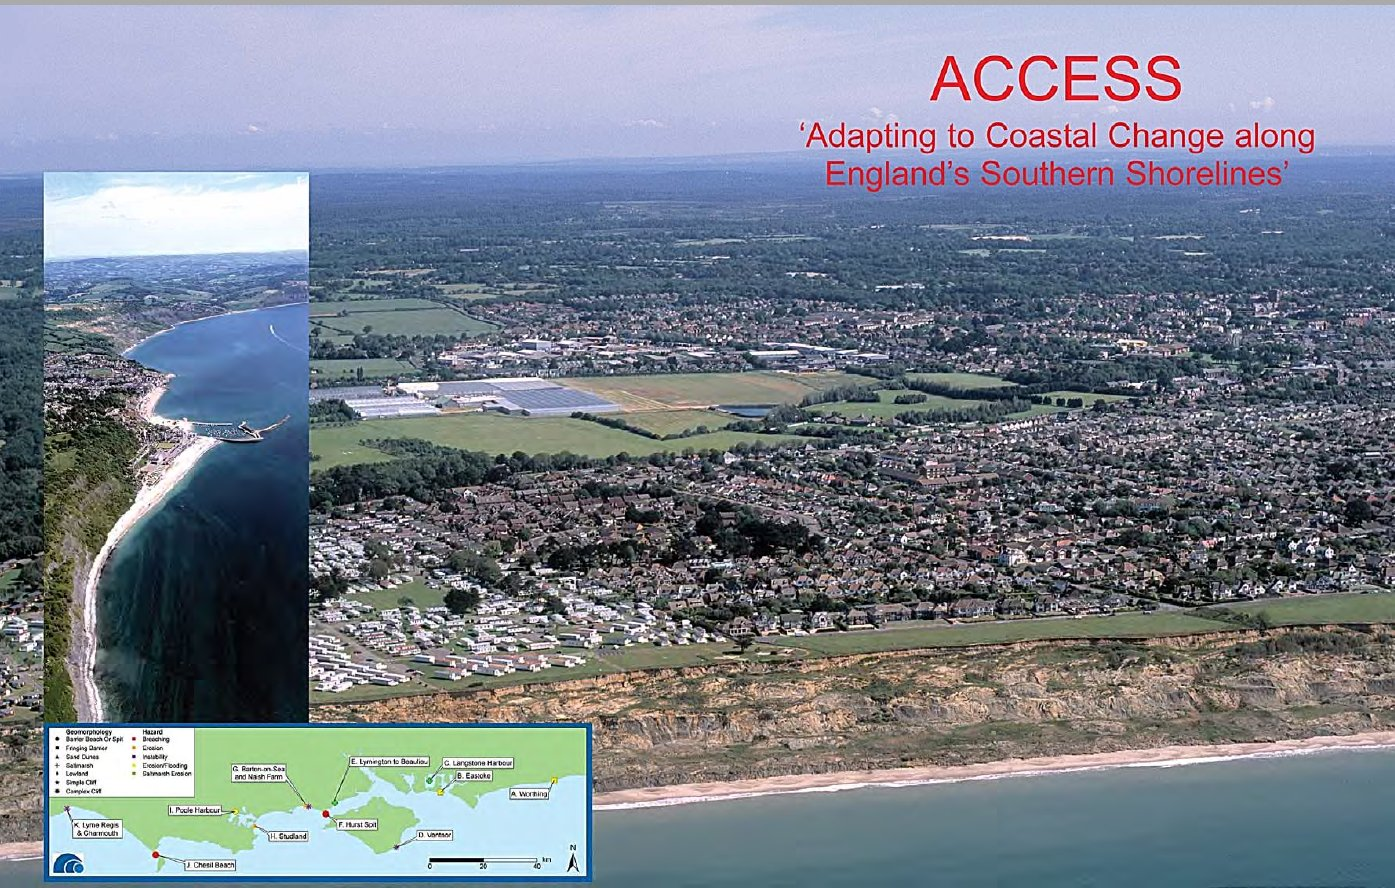 Download the ACCESS project report